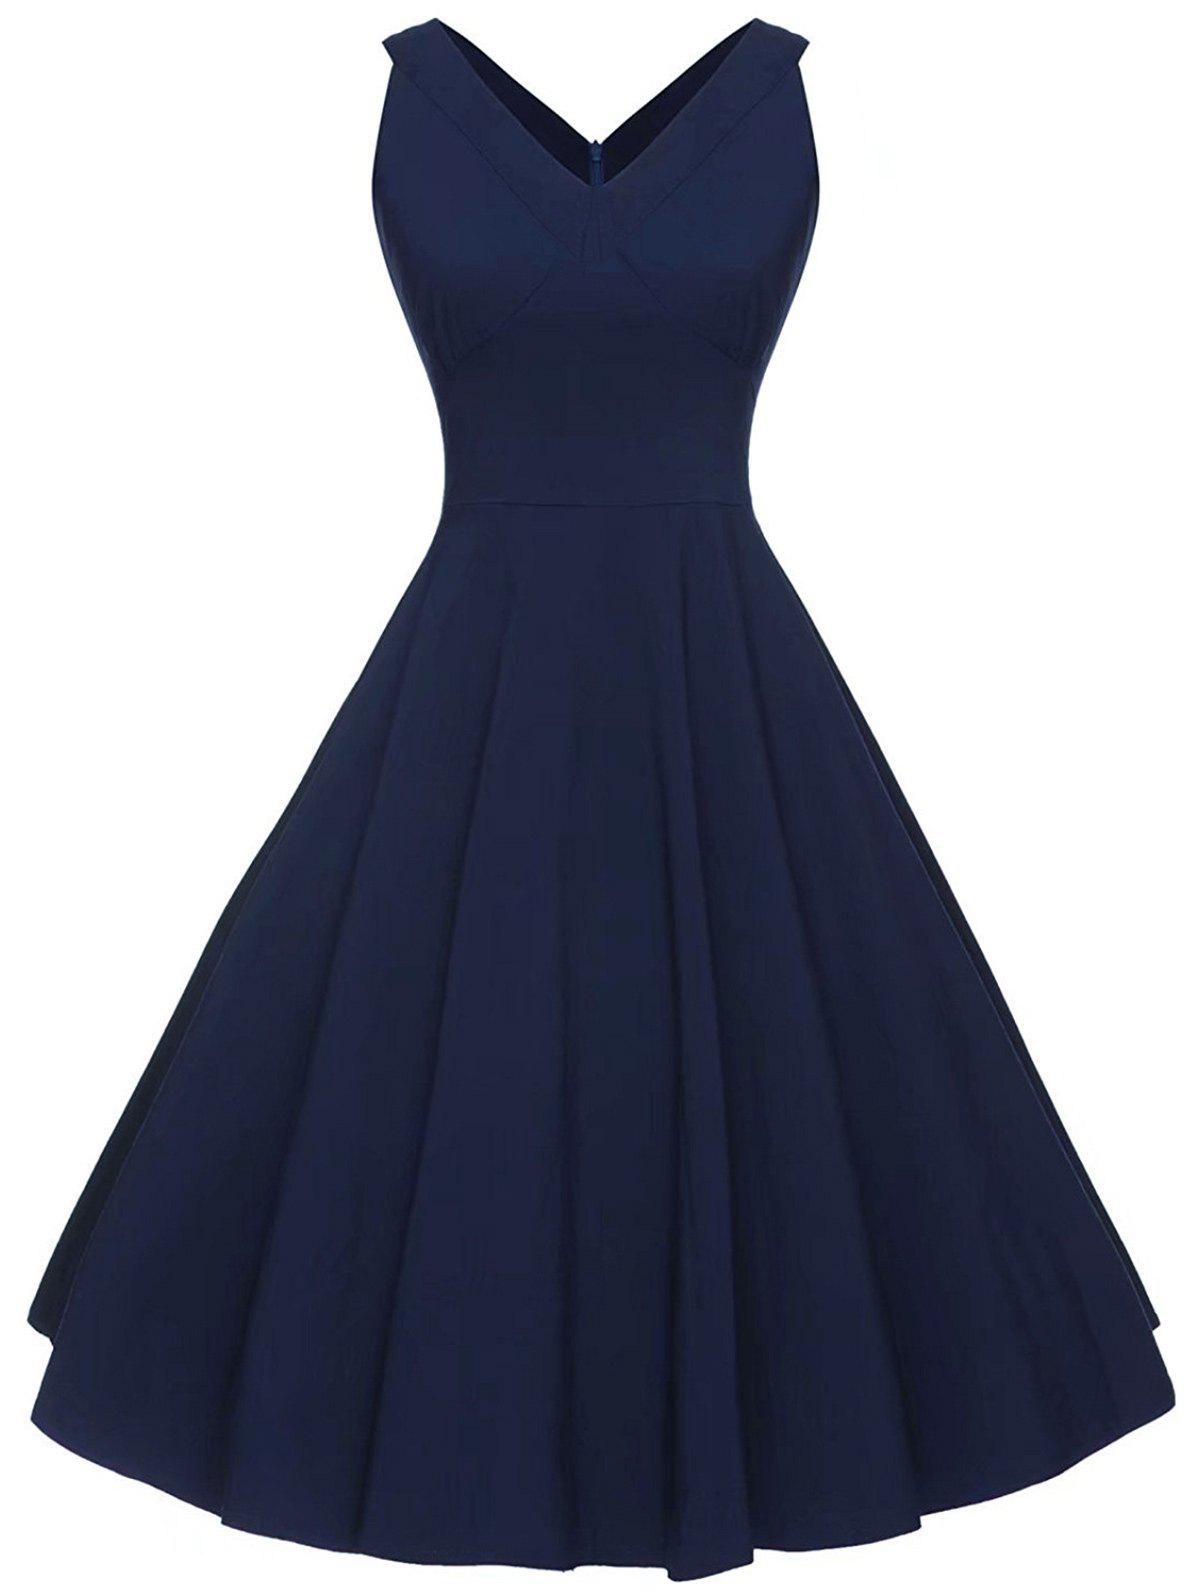 Vintage V-neck Sleeveless DressWOMEN<br><br>Size: XL; Color: PURPLISH BLUE; Style: Vintage; Material: Cotton,Polyester; Silhouette: A-Line; Dress Type: Fit and Flare Dress; Dresses Length: Mid-Calf; Neckline: V-Neck; Sleeve Length: Sleeveless; Pattern Type: Solid Color; With Belt: No; Season: Summer; Weight: 0.4000kg; Package Contents: 1 x Dress;